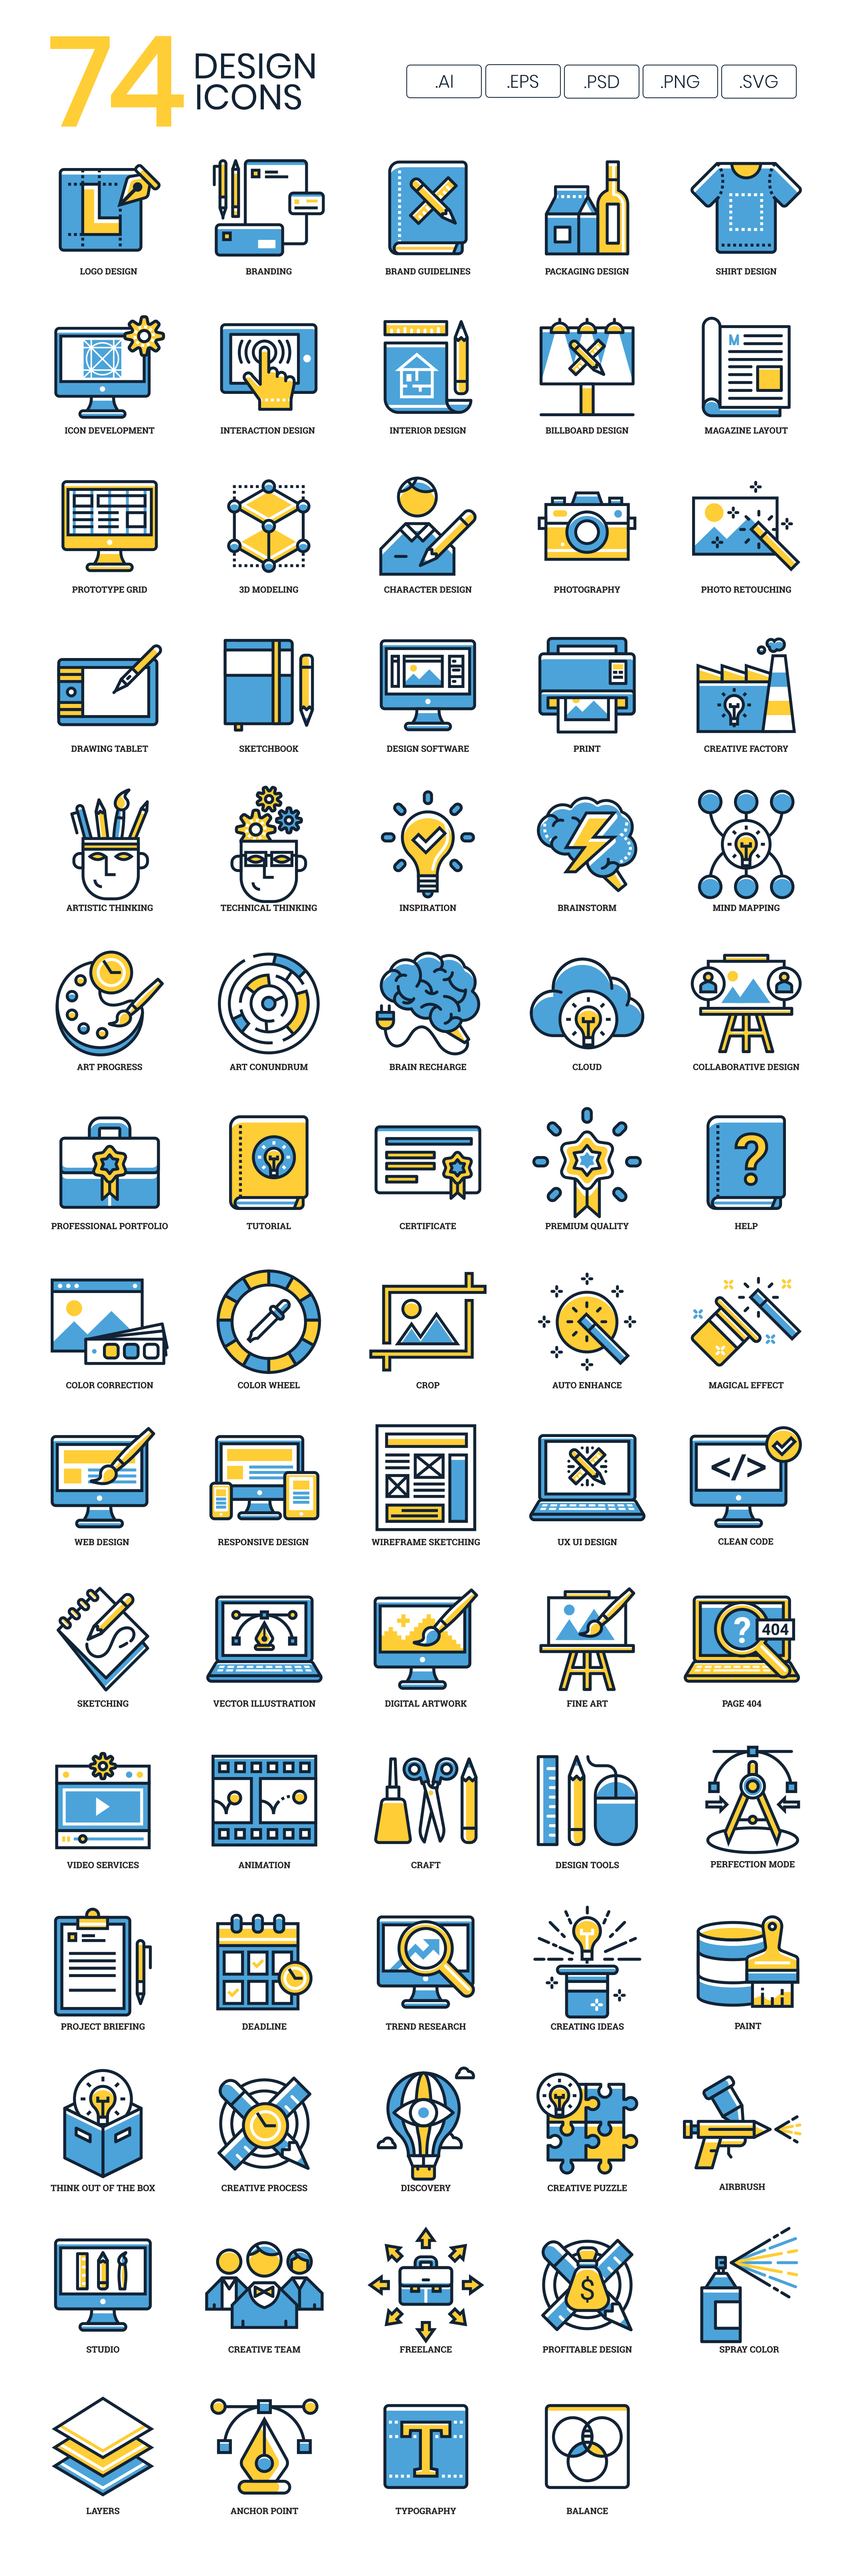 Design Vector Icons Preview Image